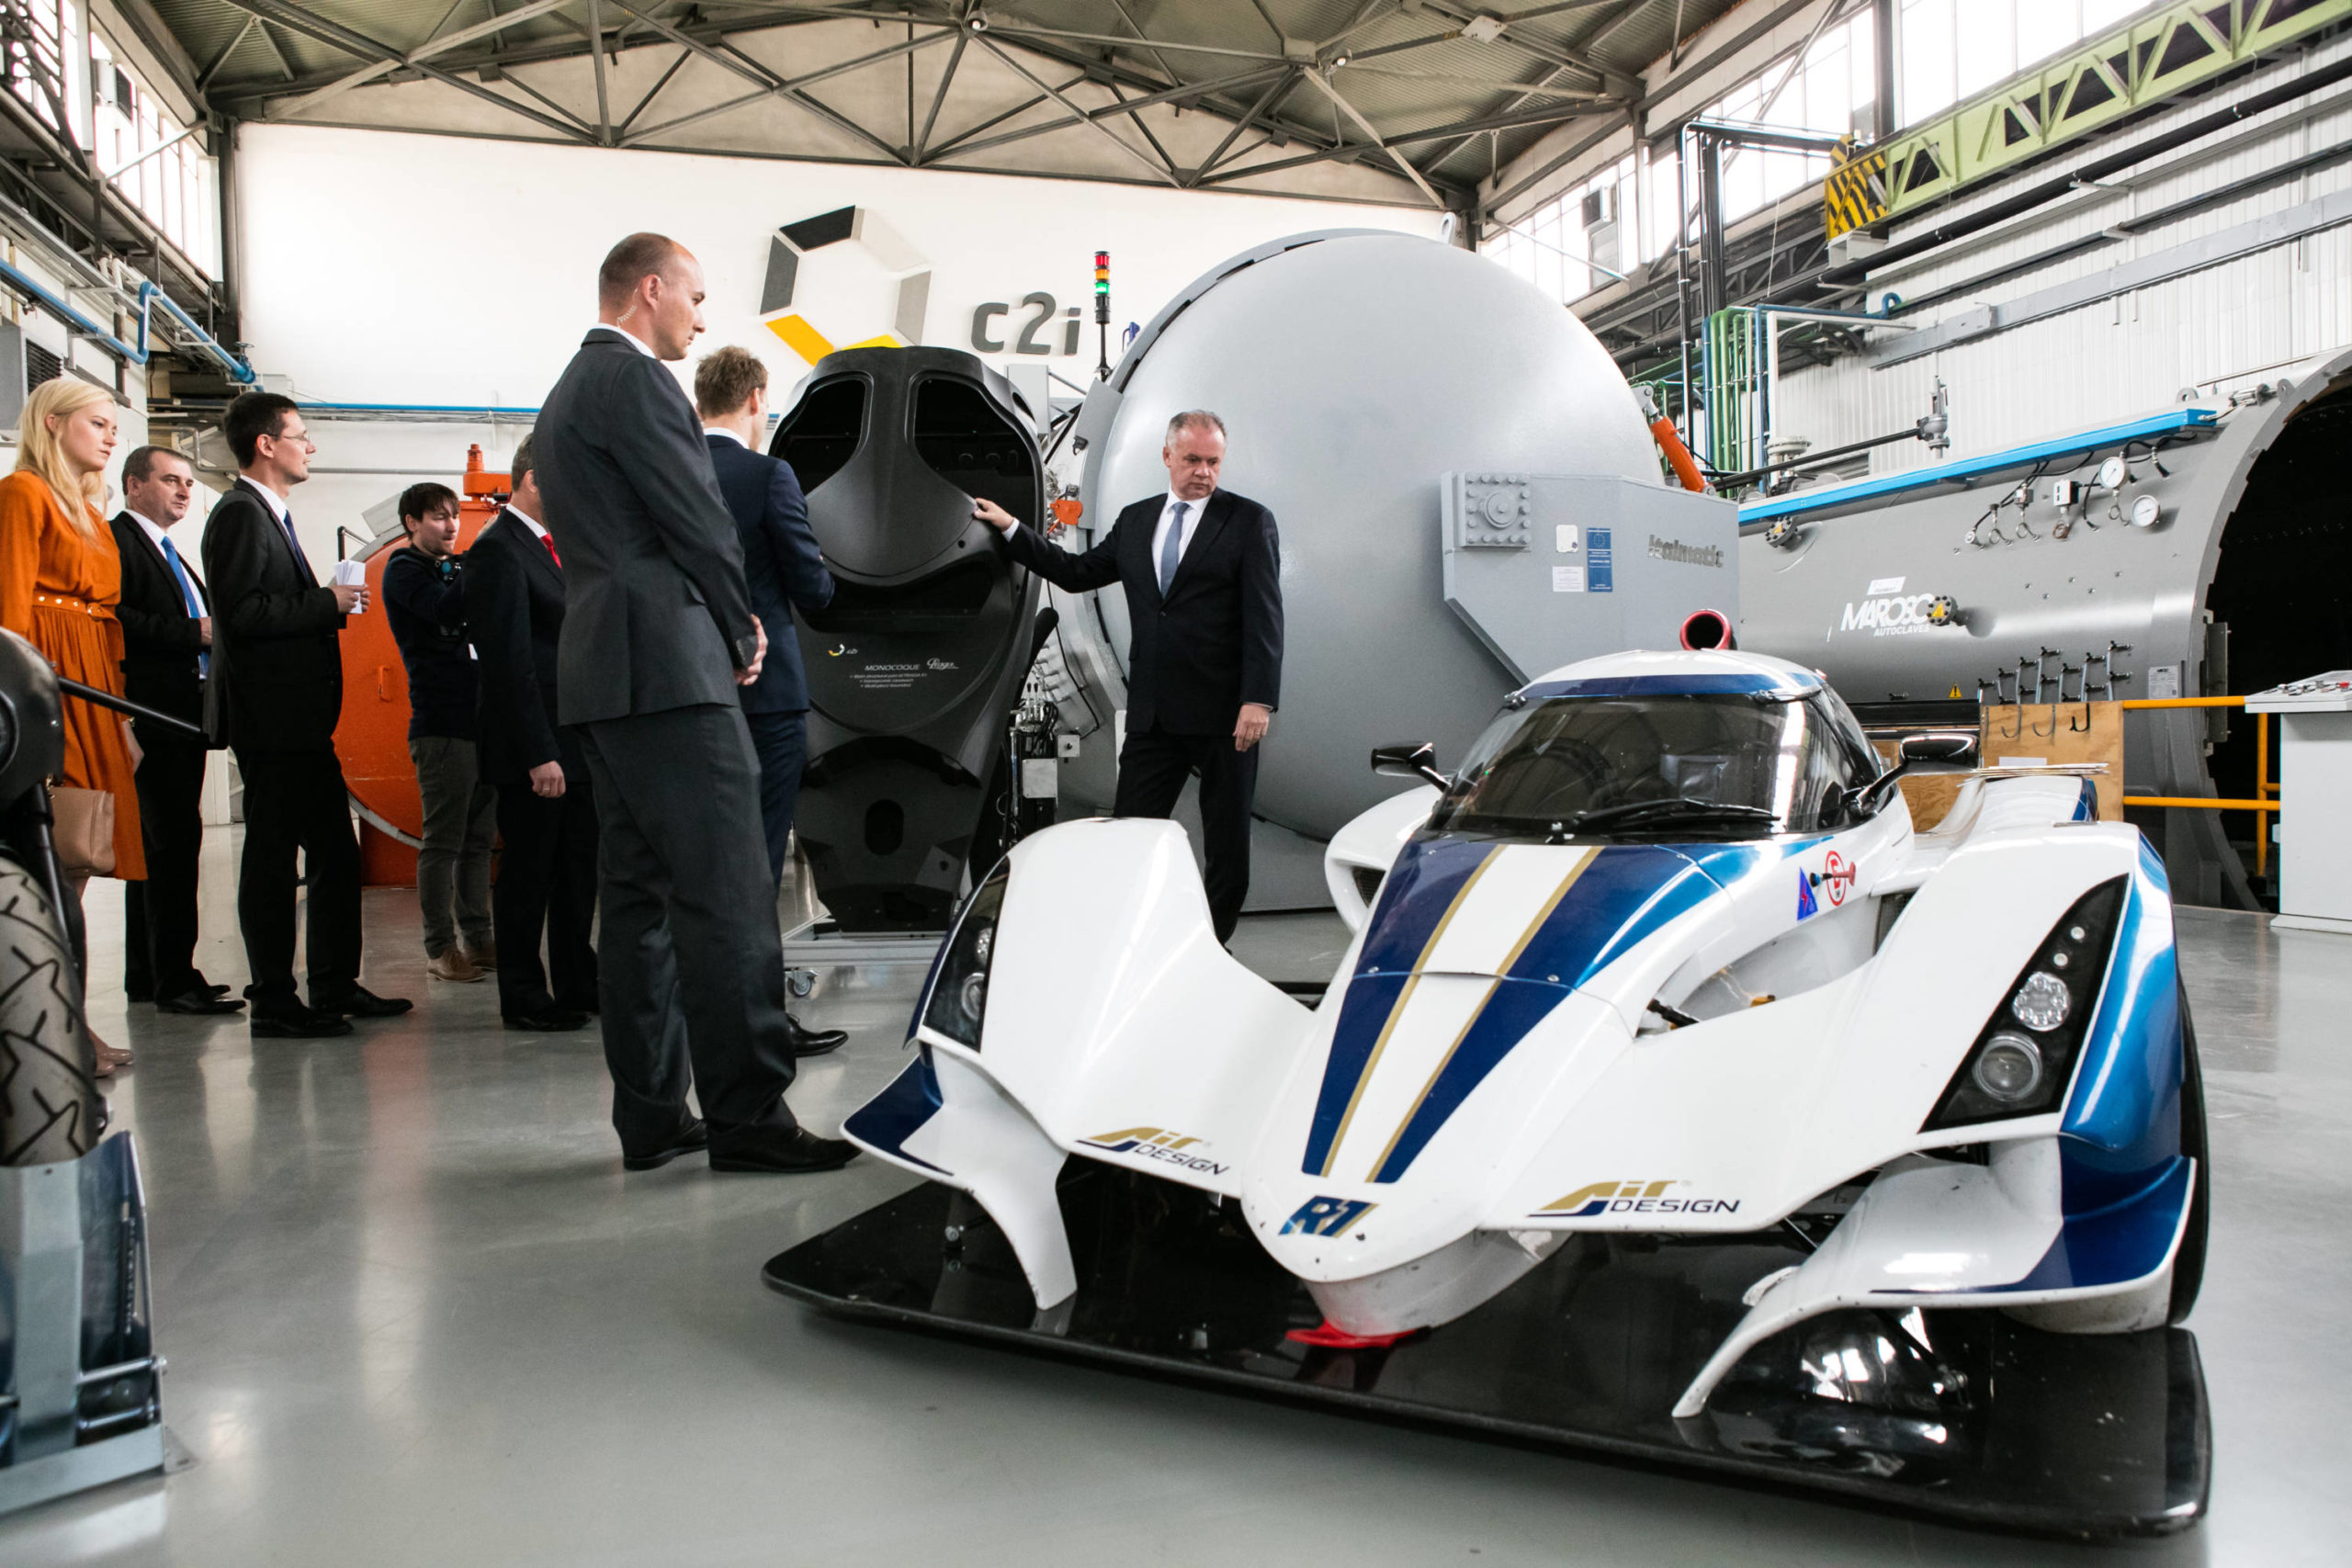 The President of Slovakia Andrej Kiska in Praga R1